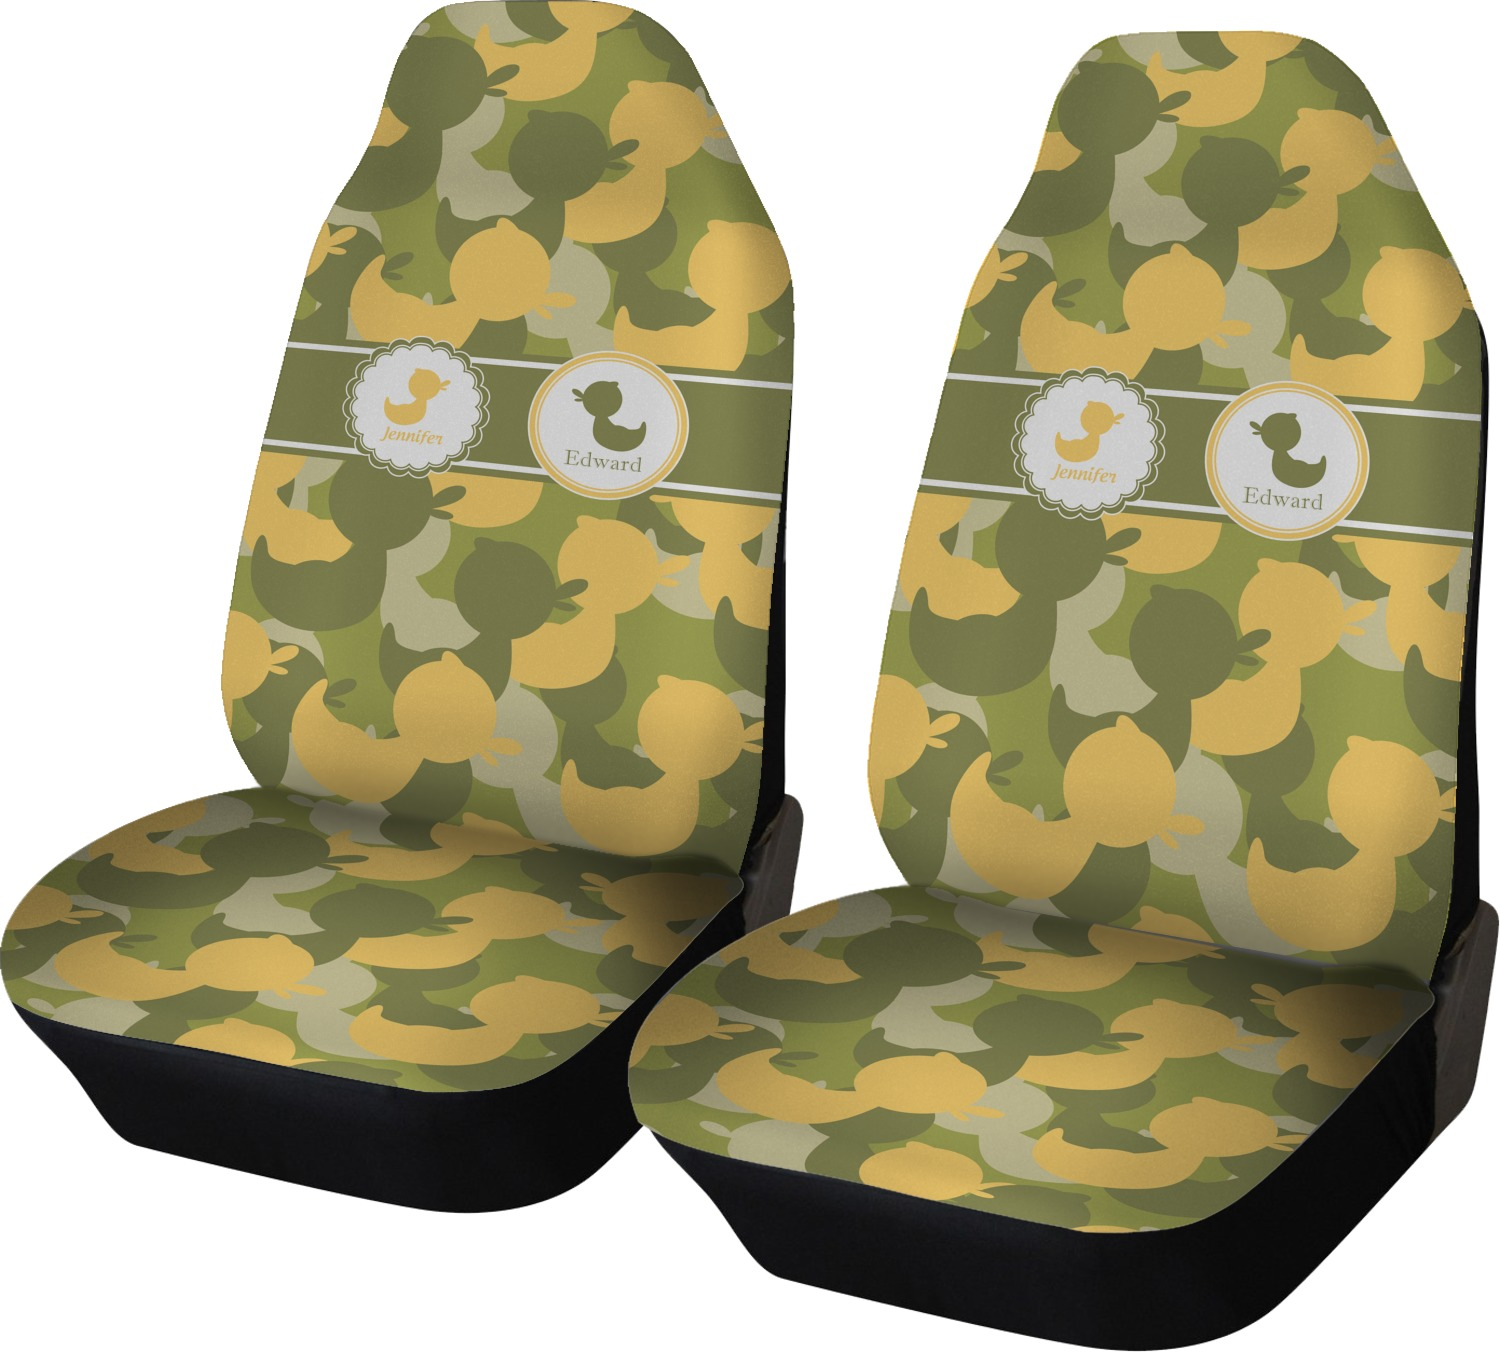 Rubber Duckie Camo Car Seat Covers Set Of Two Personalized